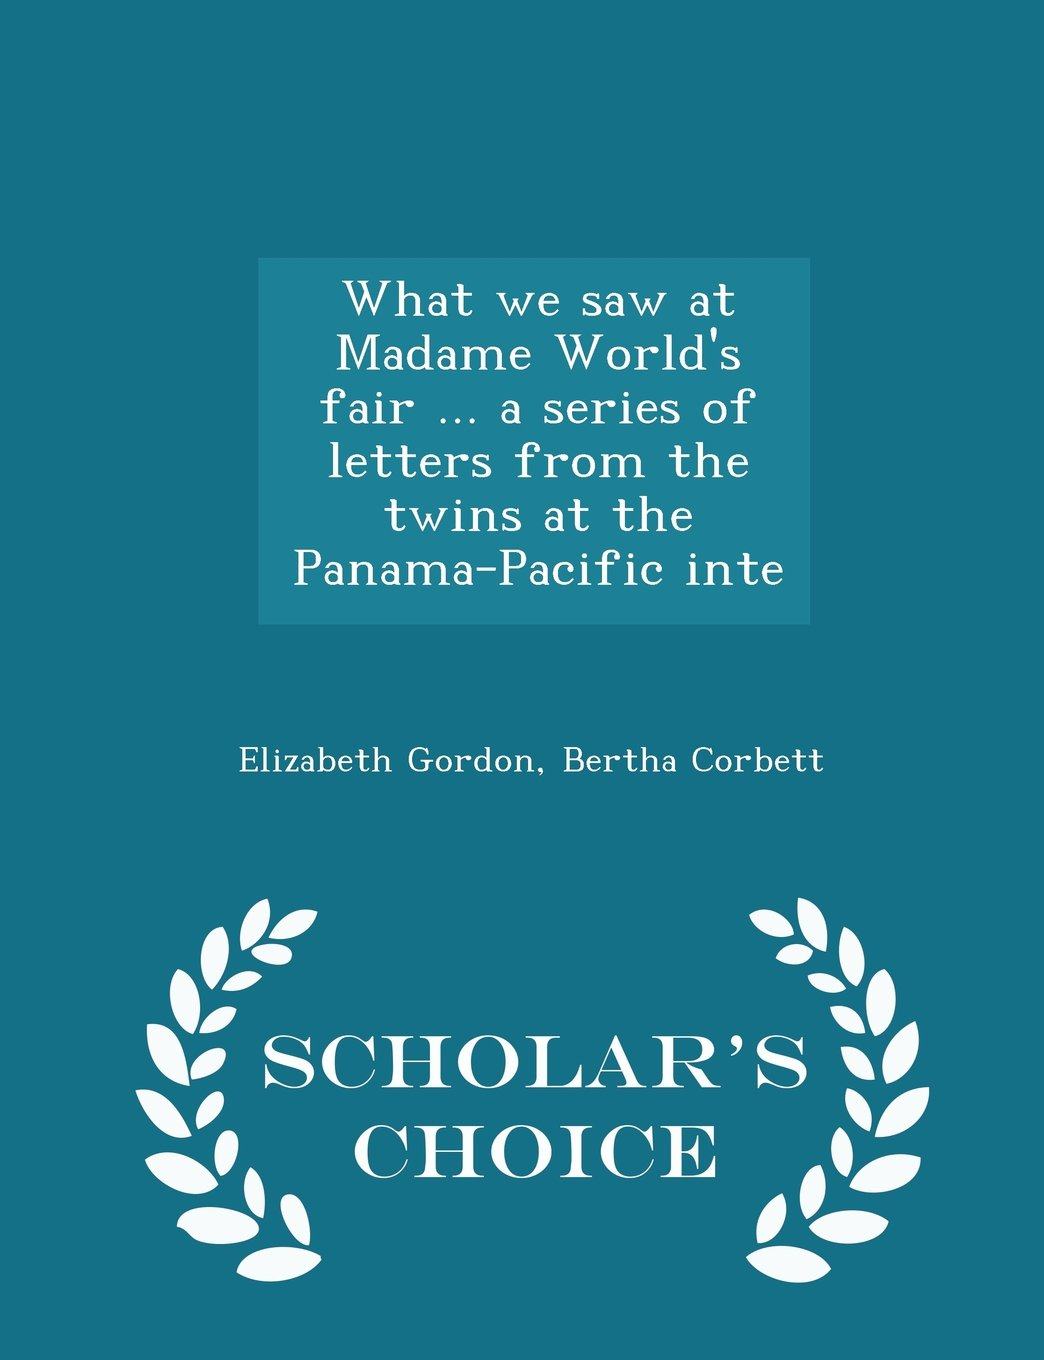 Download What we saw at Madame World's fair ... a series of letters from the twins at the Panama-Pacific inte - Scholar's Choice Edition pdf